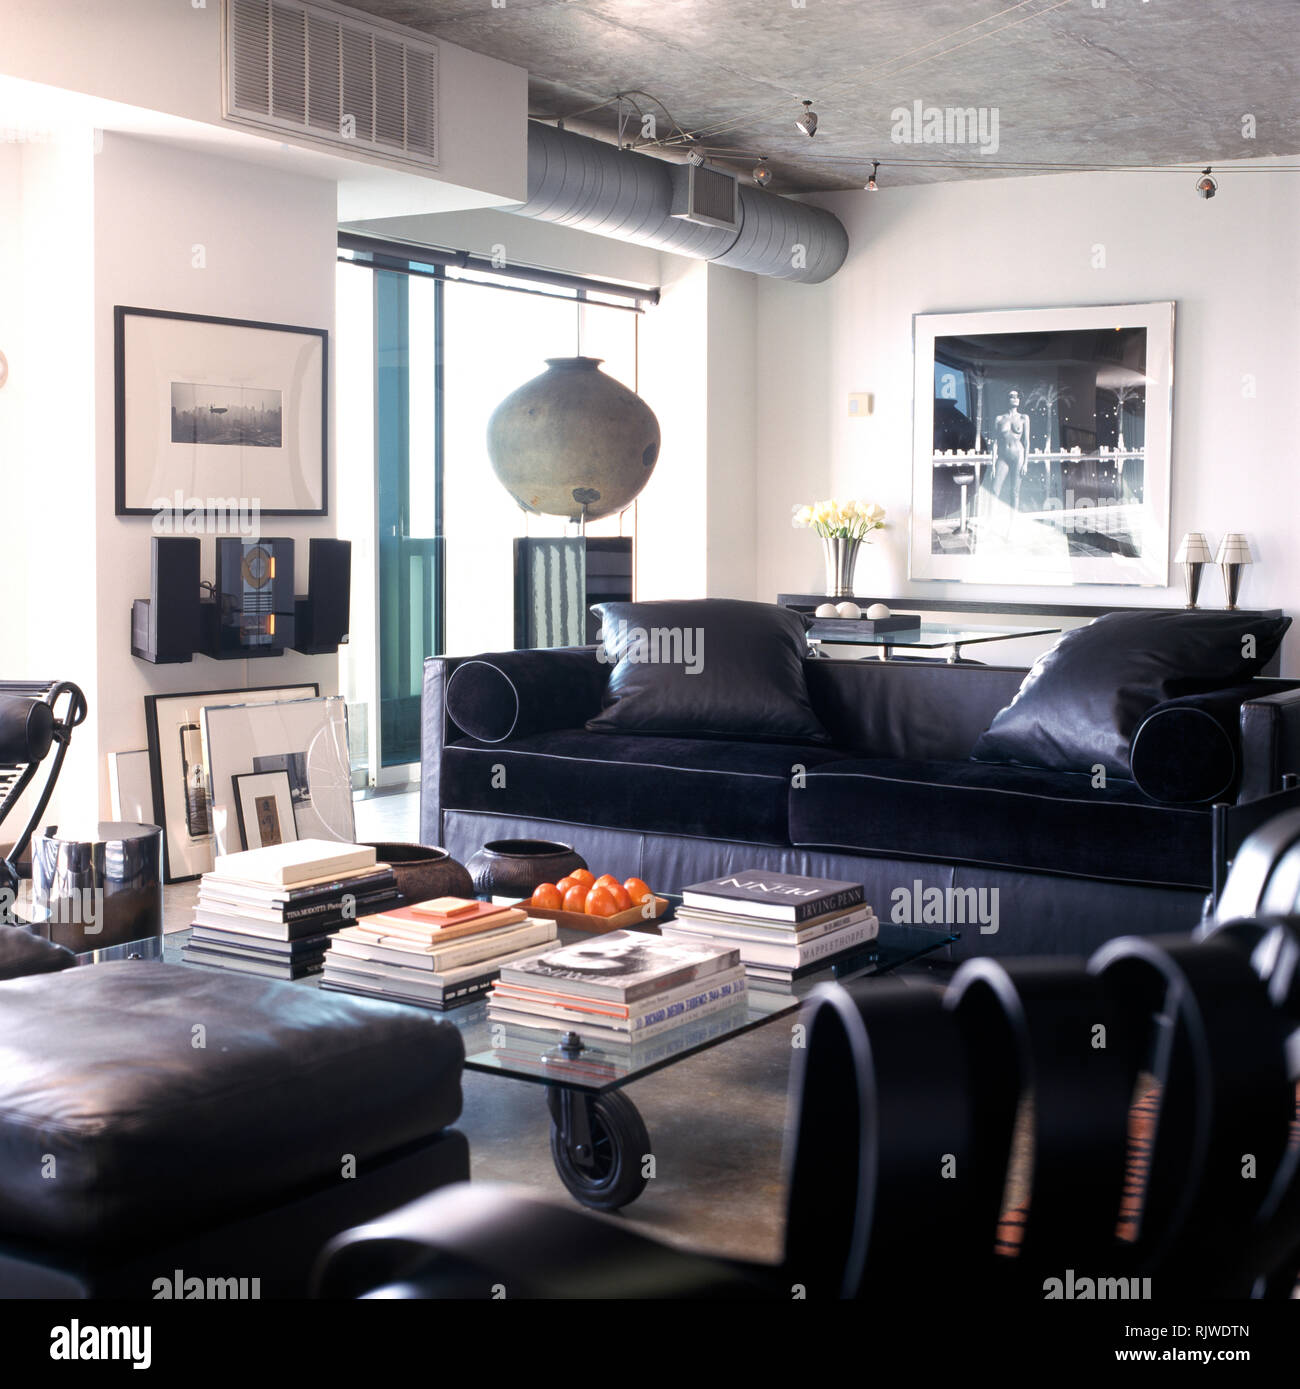 Strange Black Leather Furniture In Apartment Living Room Stock Photo Beatyapartments Chair Design Images Beatyapartmentscom